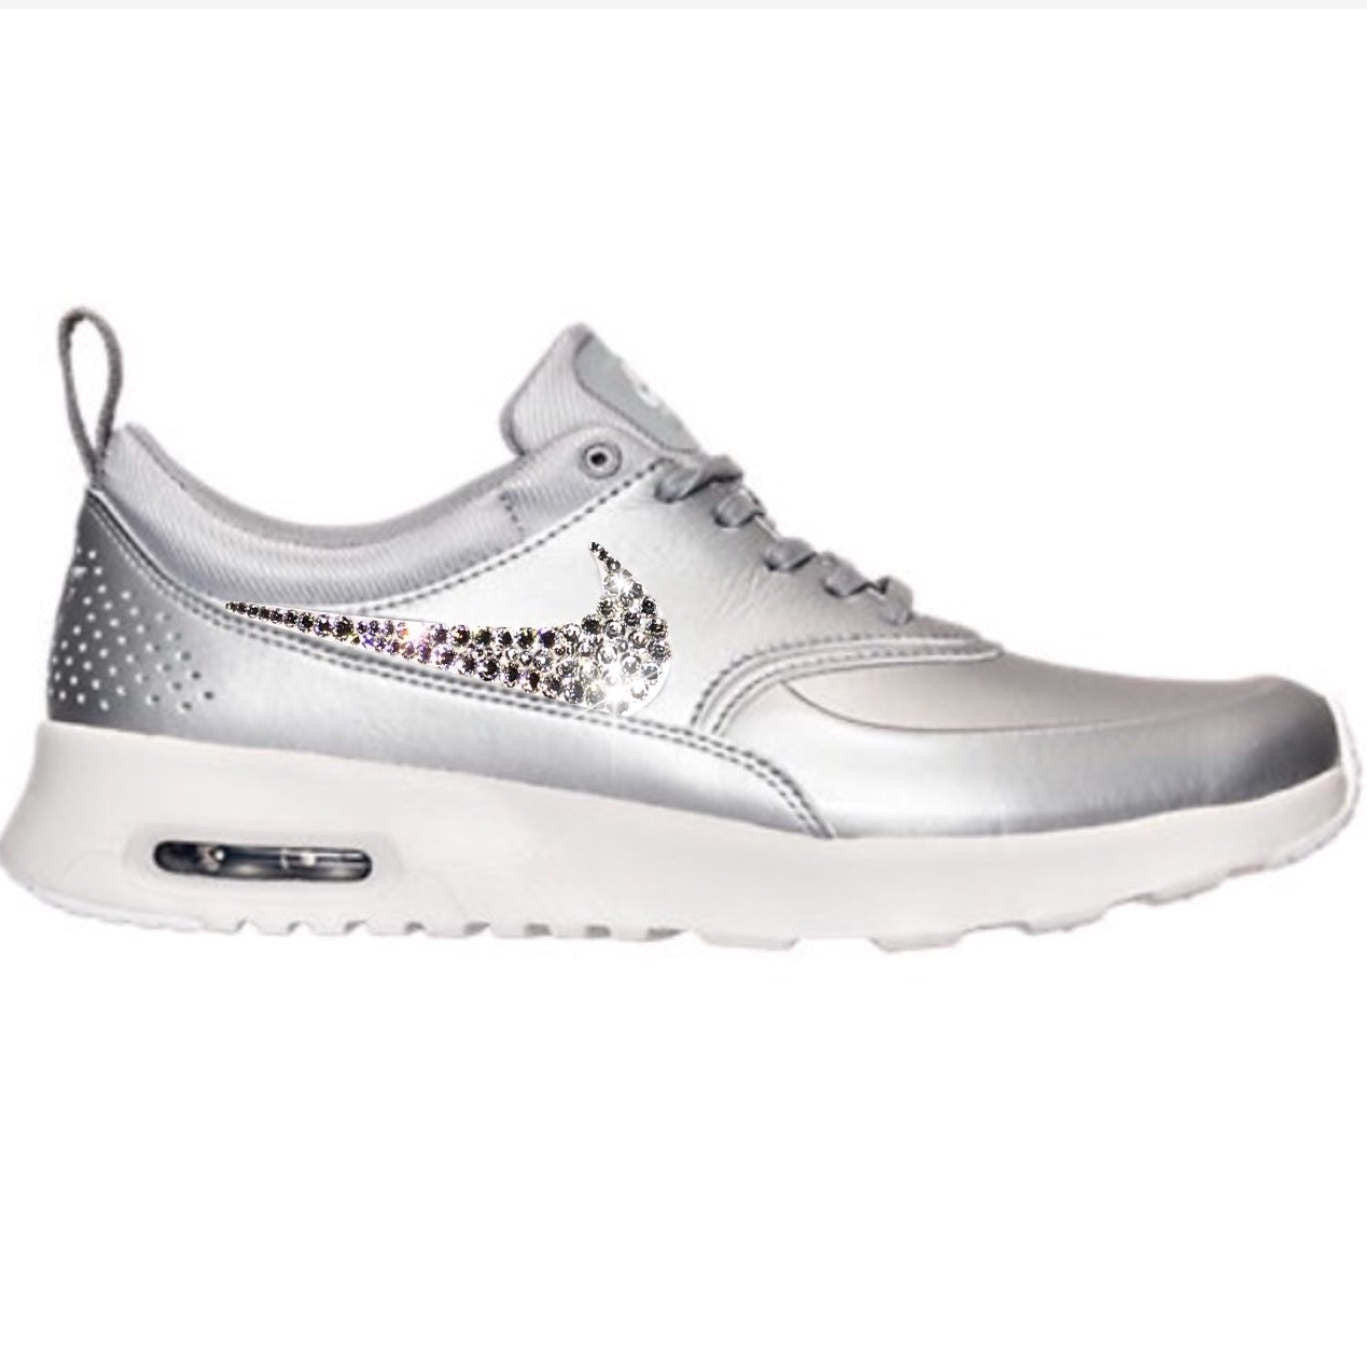 f674903f7a2f Bling Nike Air Max Thea Metallic Silver SE Shoes with Swarovski Crystals    Bedazzled with 100 ...